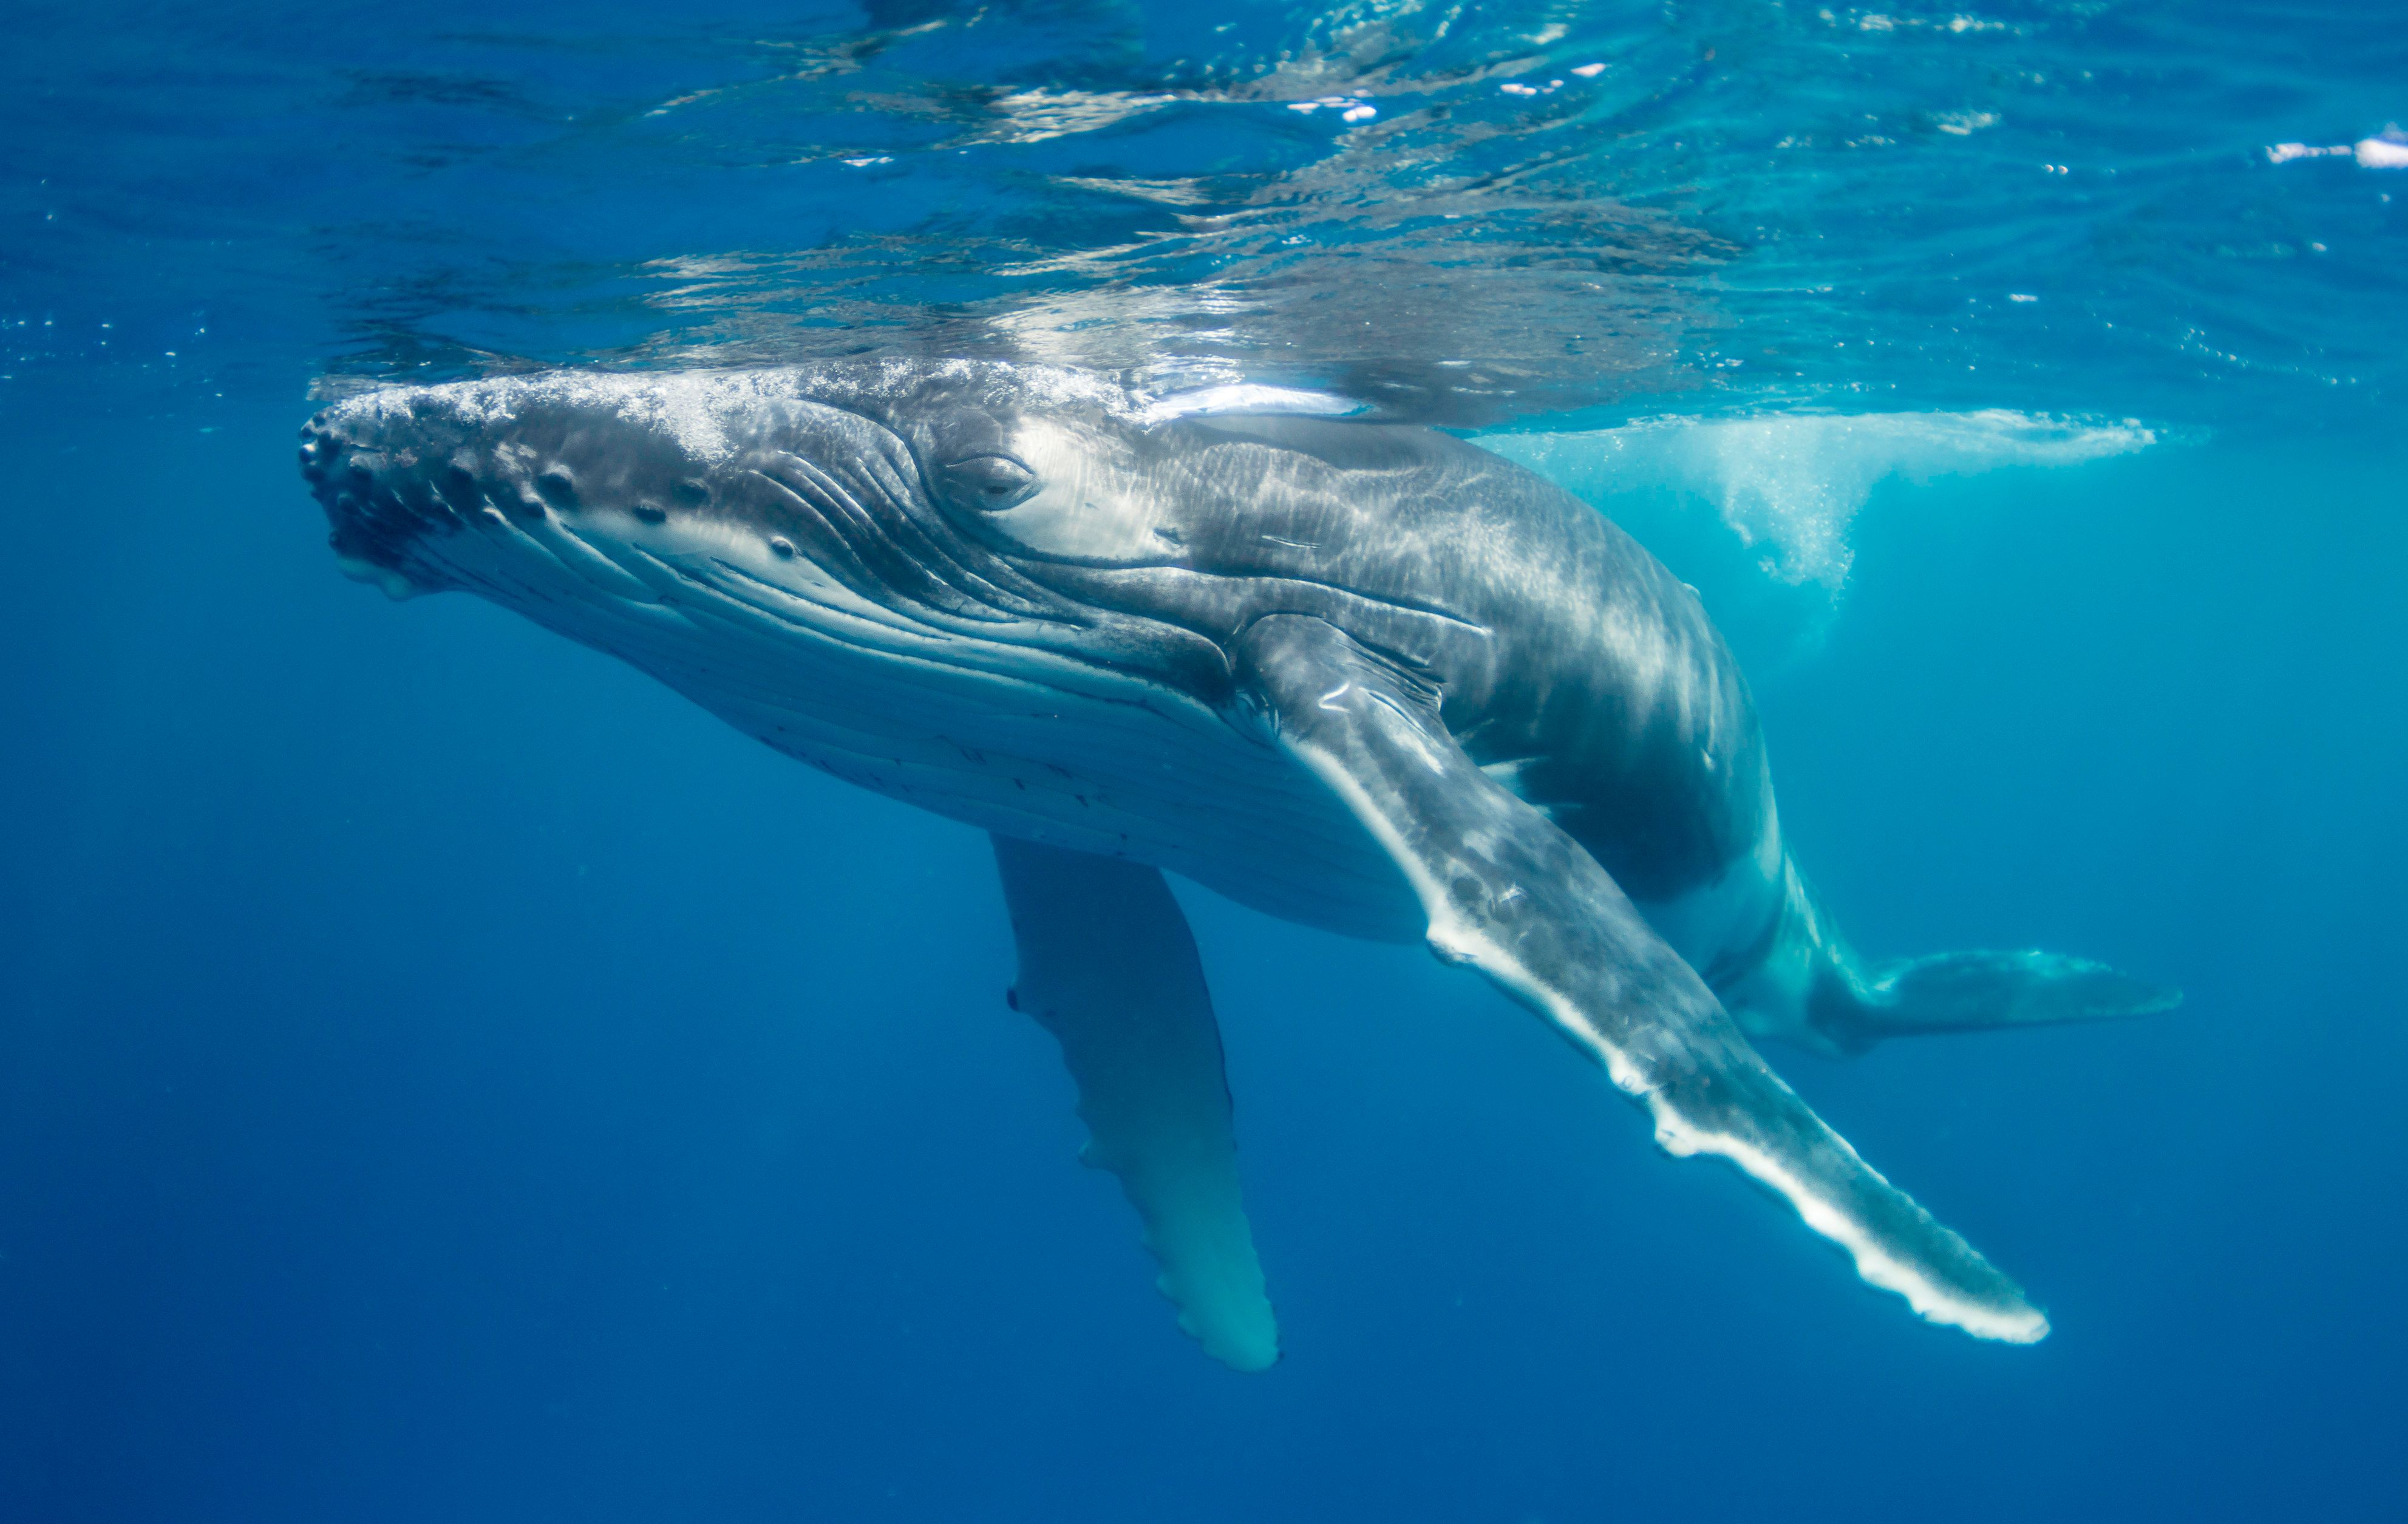 Conservation Efforts Remove Most Humpback Whales From Endangered